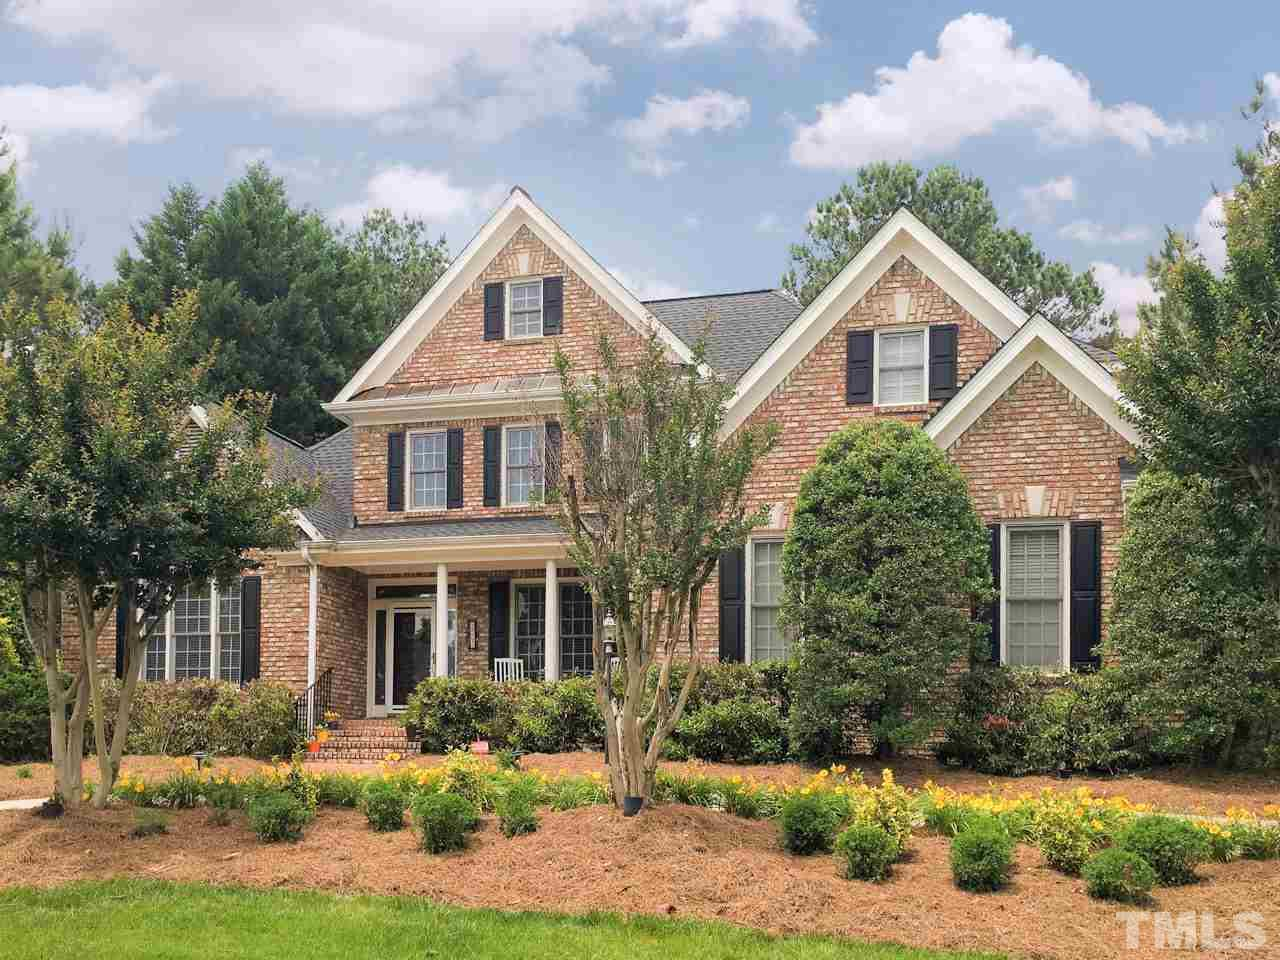 Picture of Luxury Home in Preston, Cary, NC